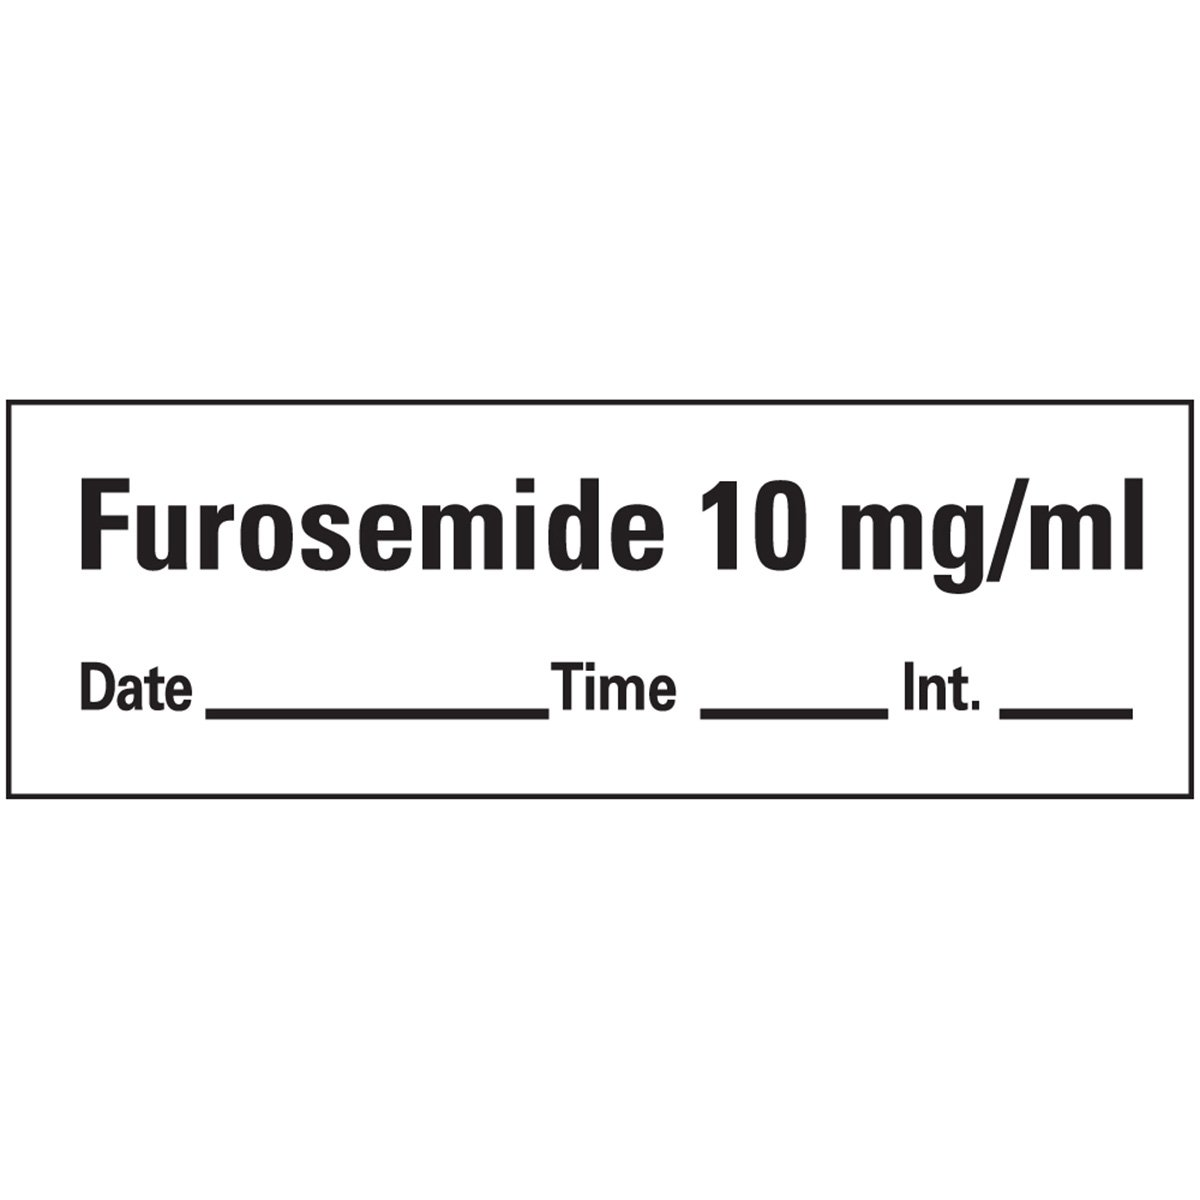 PDC Healthcare AN-134D10 Anesthesia Tape with Date, Time and Initial, Removable, Furosemide 10 mg/mL, 1 Core, 1/2'' x 500'', Imprints White 333 (Pack of 1)